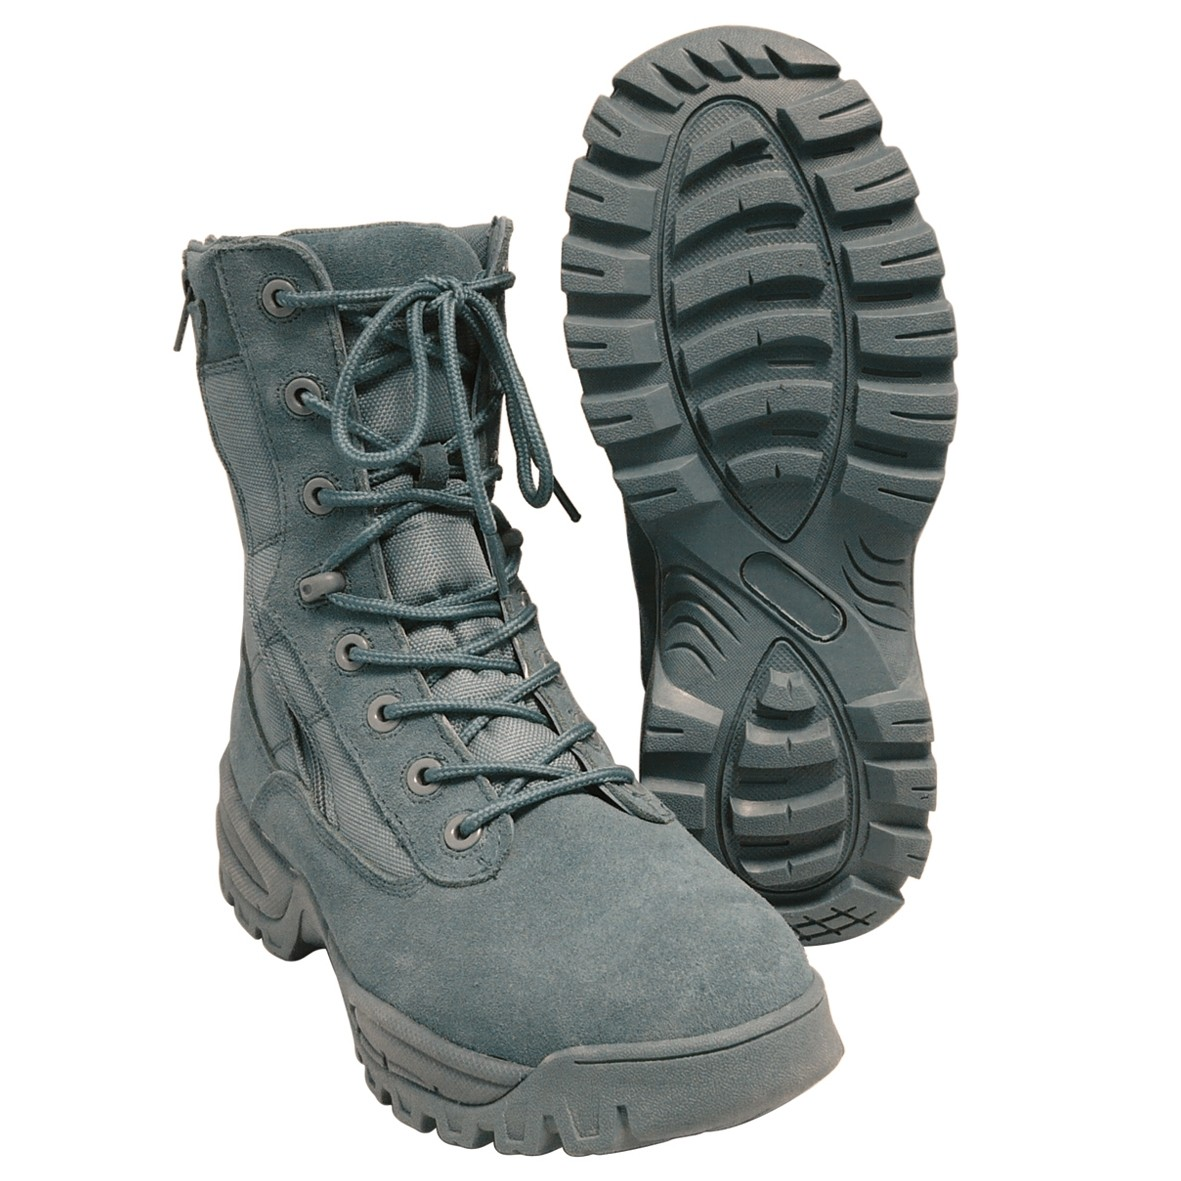 Tactical Boot Two-Zip, foliage